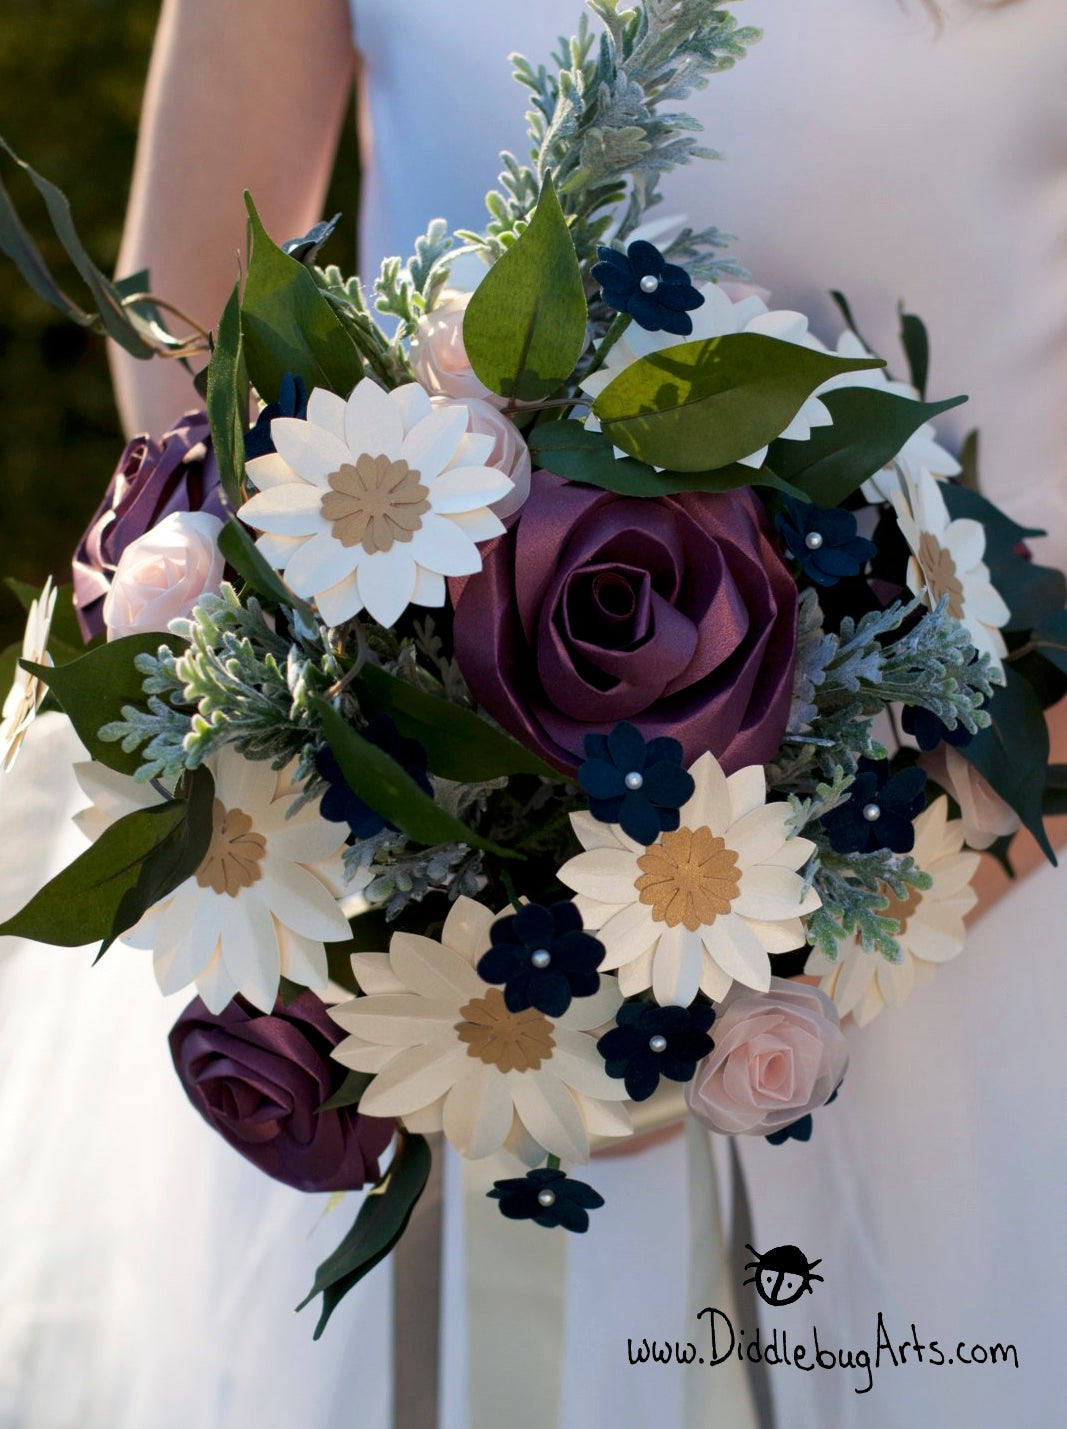 Ramona's Bouquet - Paper Roses and Daisies with Silk Greenery